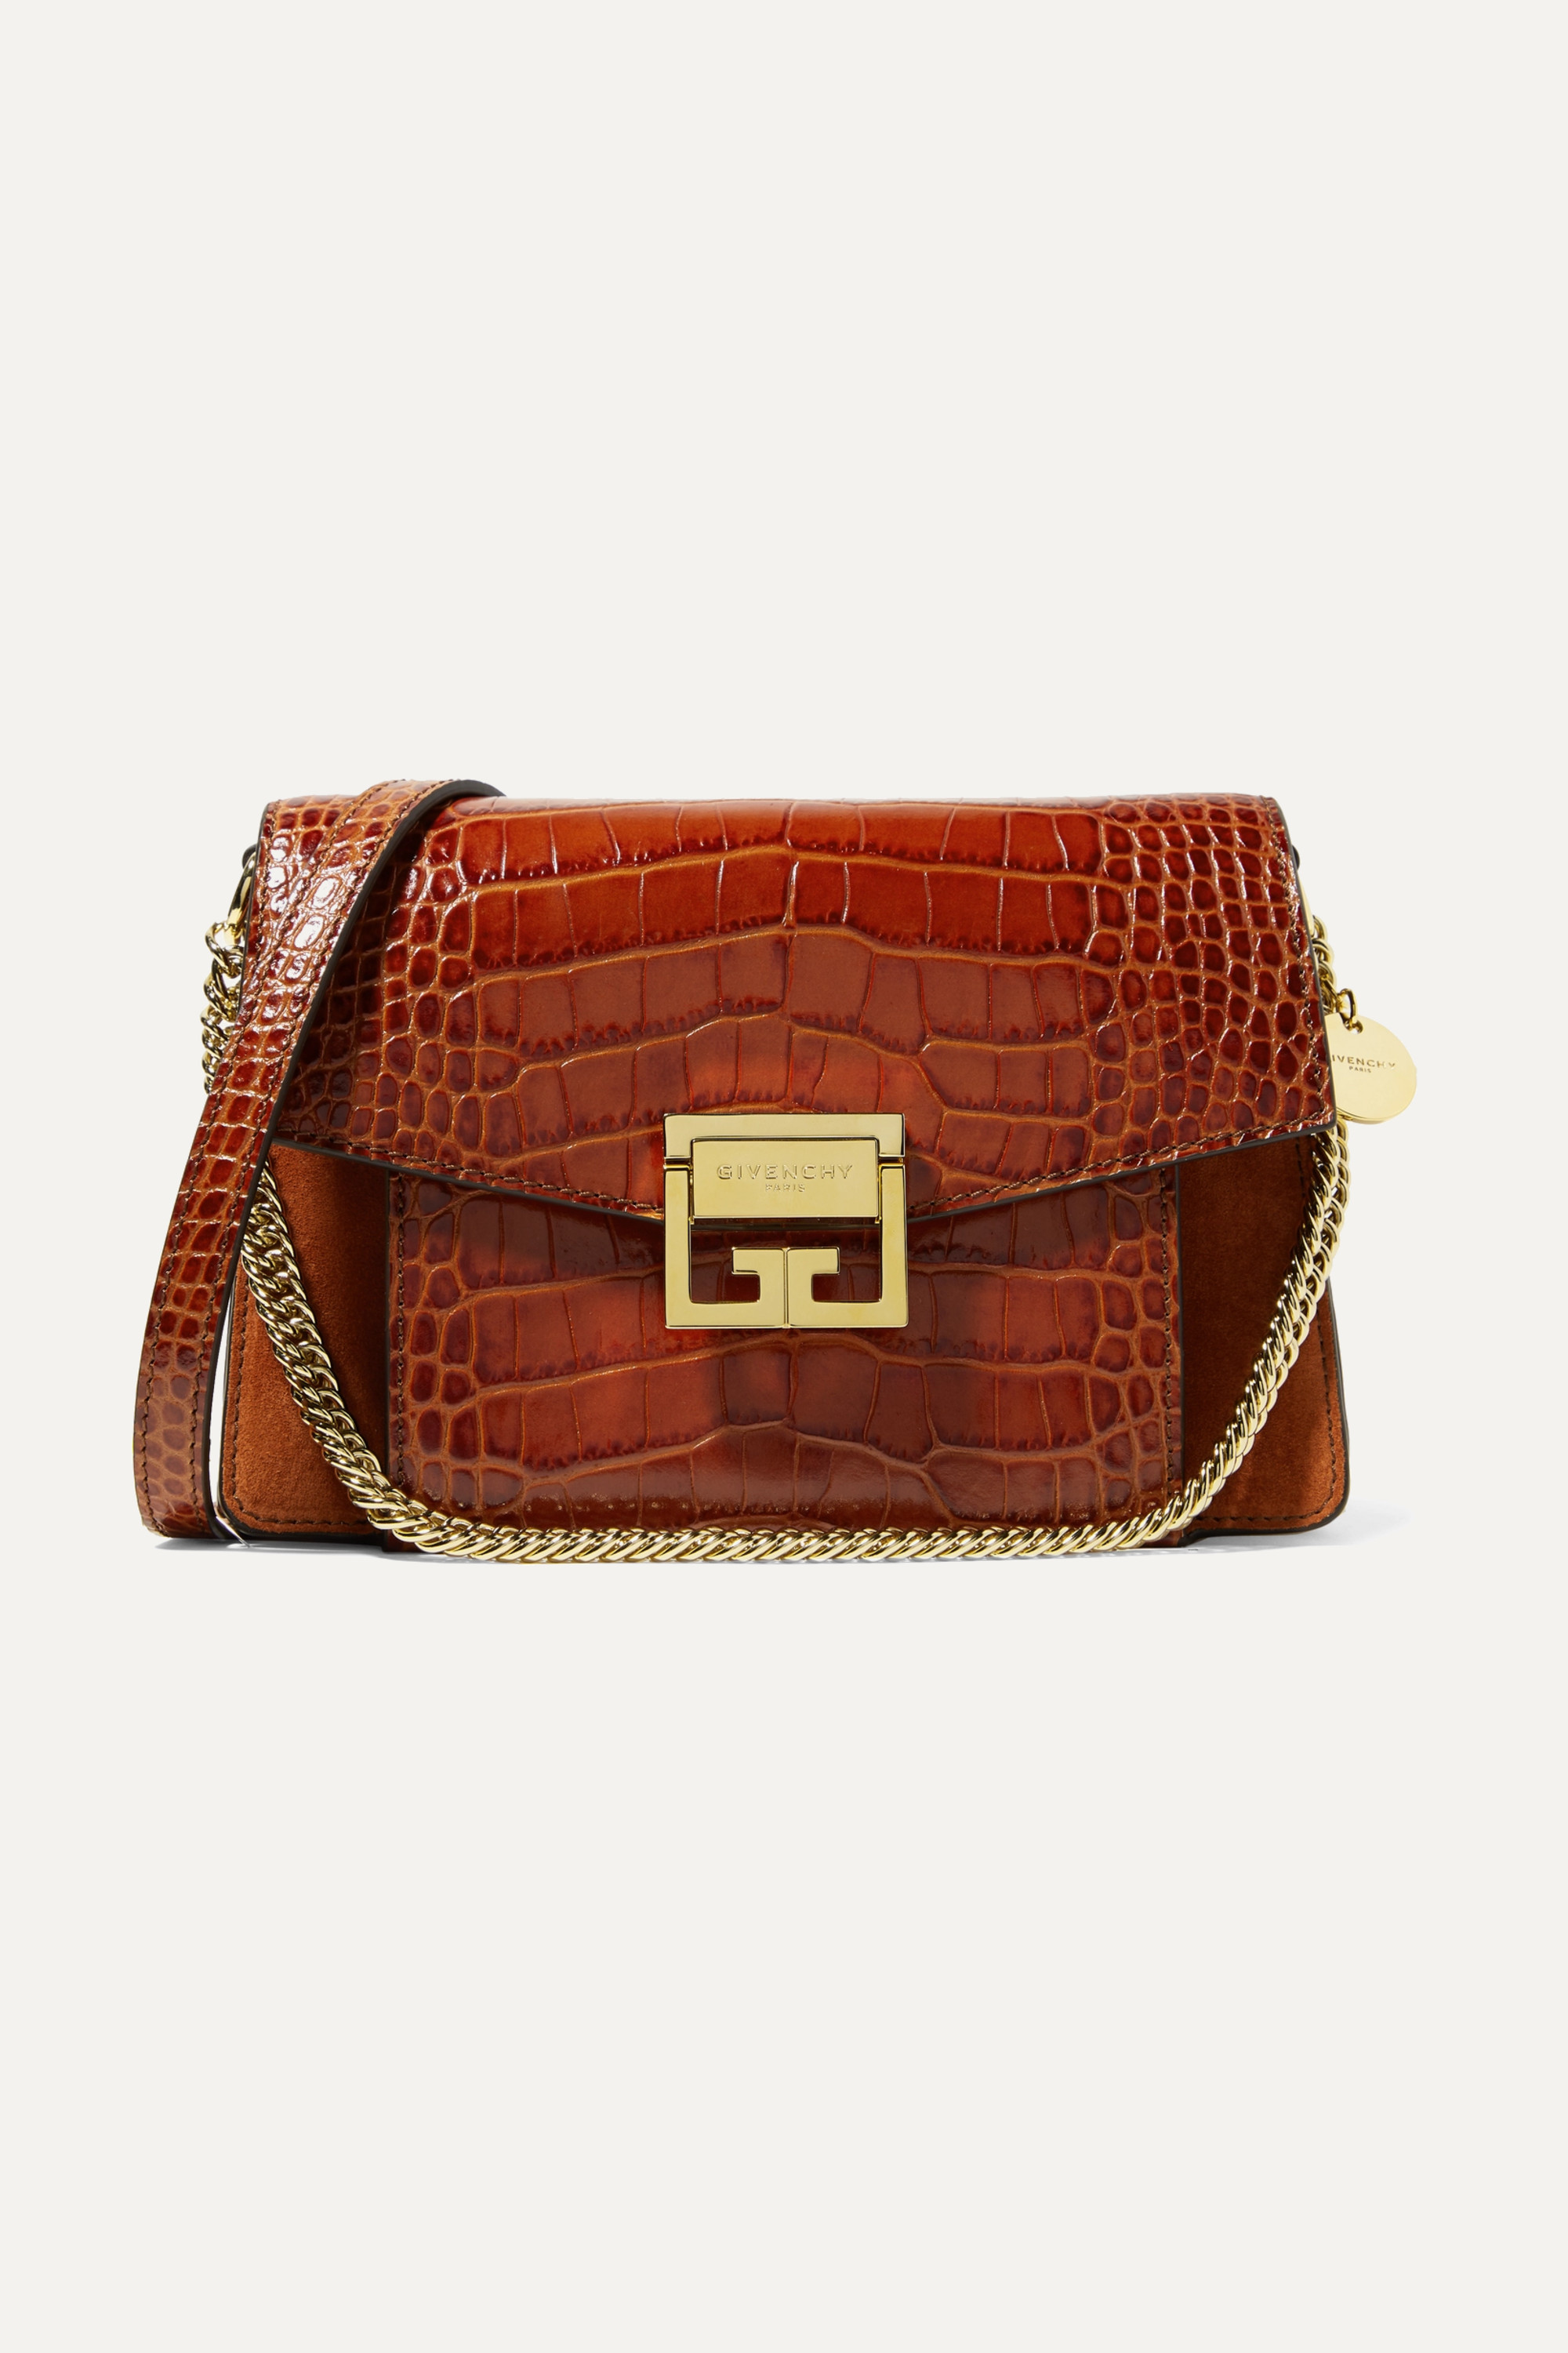 Givenchy GV3 small croc-effect leather and suede shoulder bag